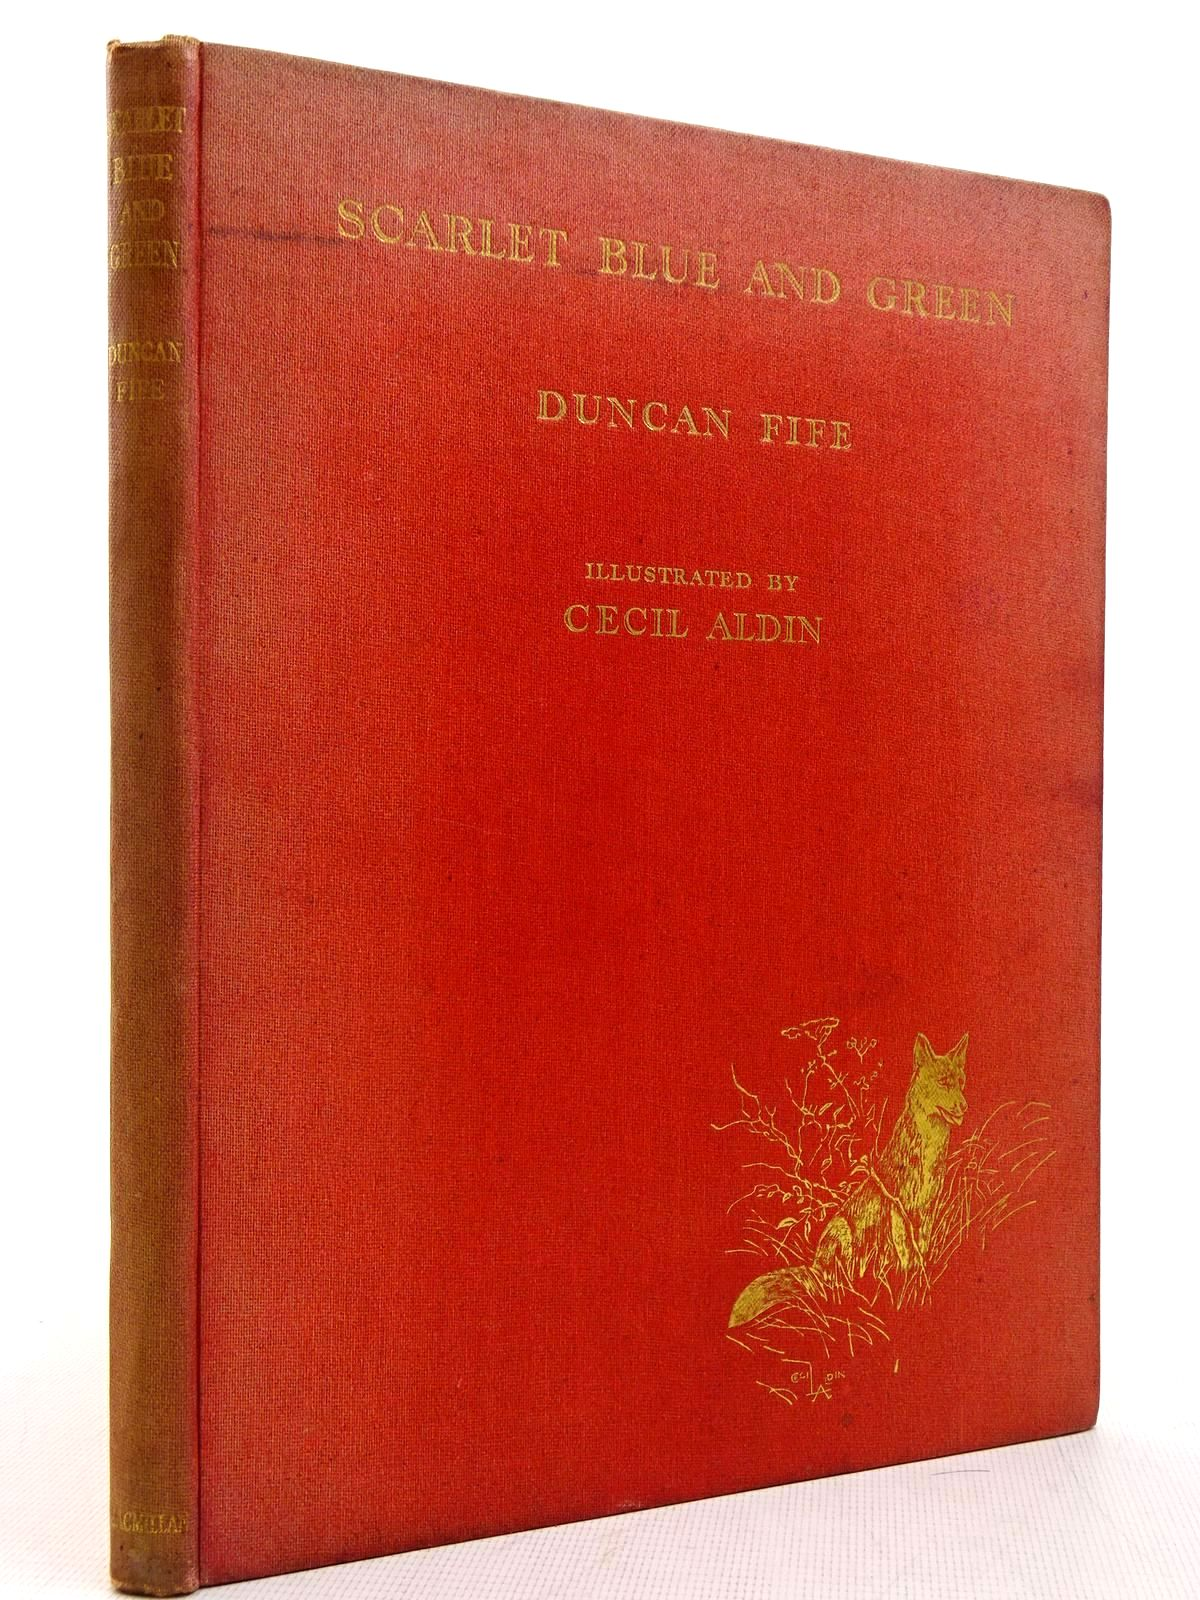 Photo of SCARLET BLUE AND GREEN written by Fife, Duncan illustrated by Aldin, Cecil published by Macmillan & Co. Ltd. (STOCK CODE: 2129088)  for sale by Stella & Rose's Books